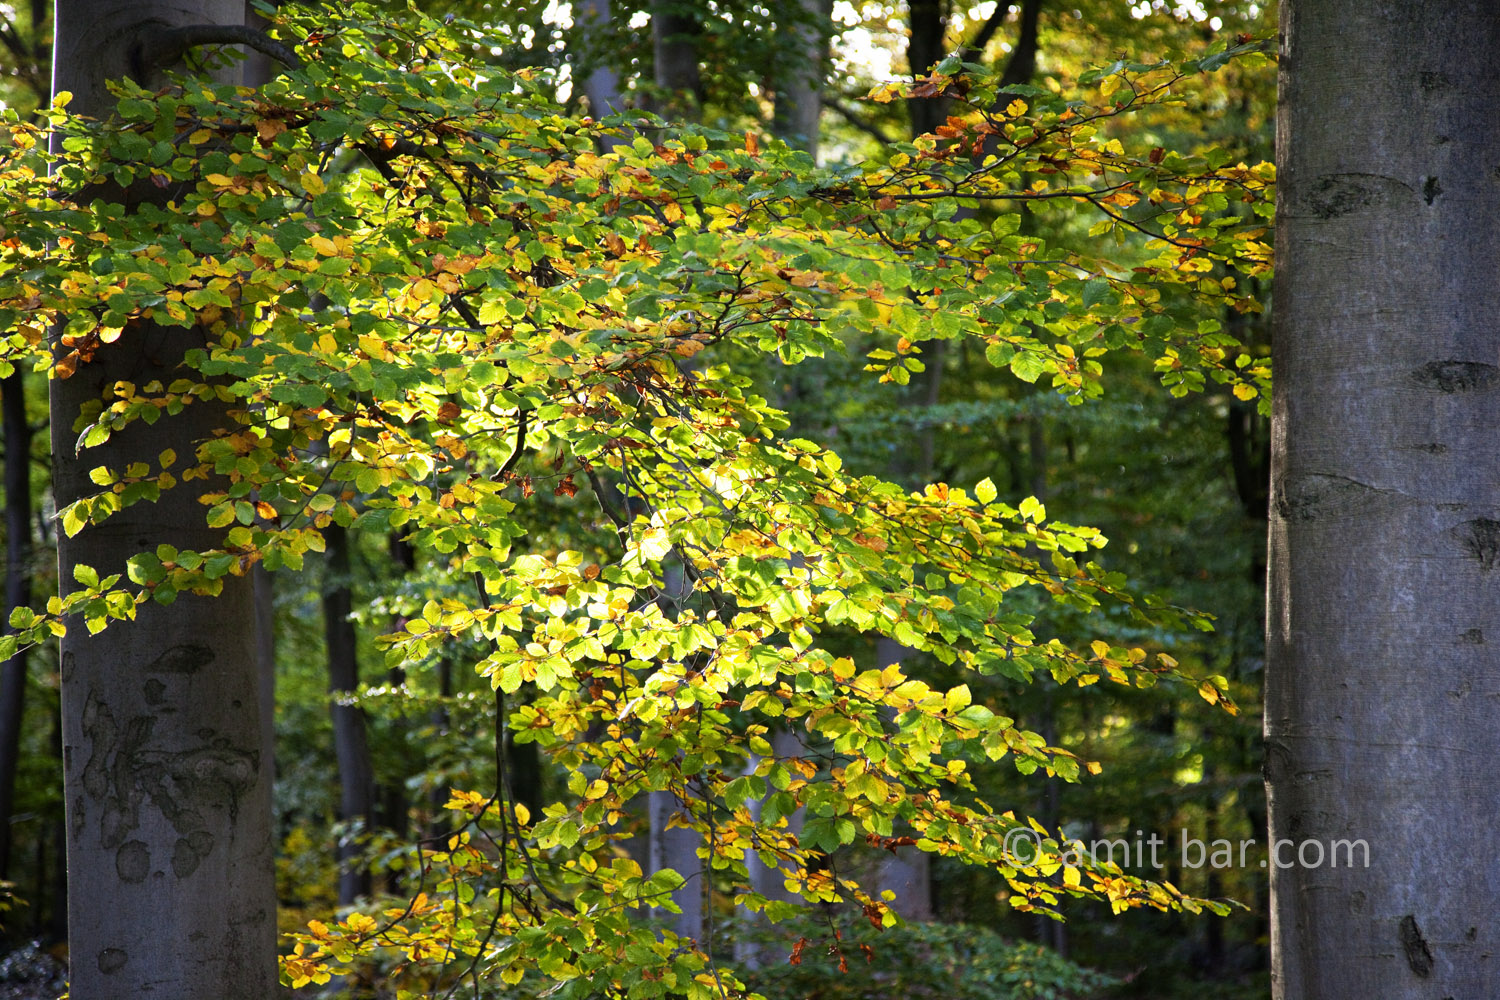 Backlighted: Forest scene